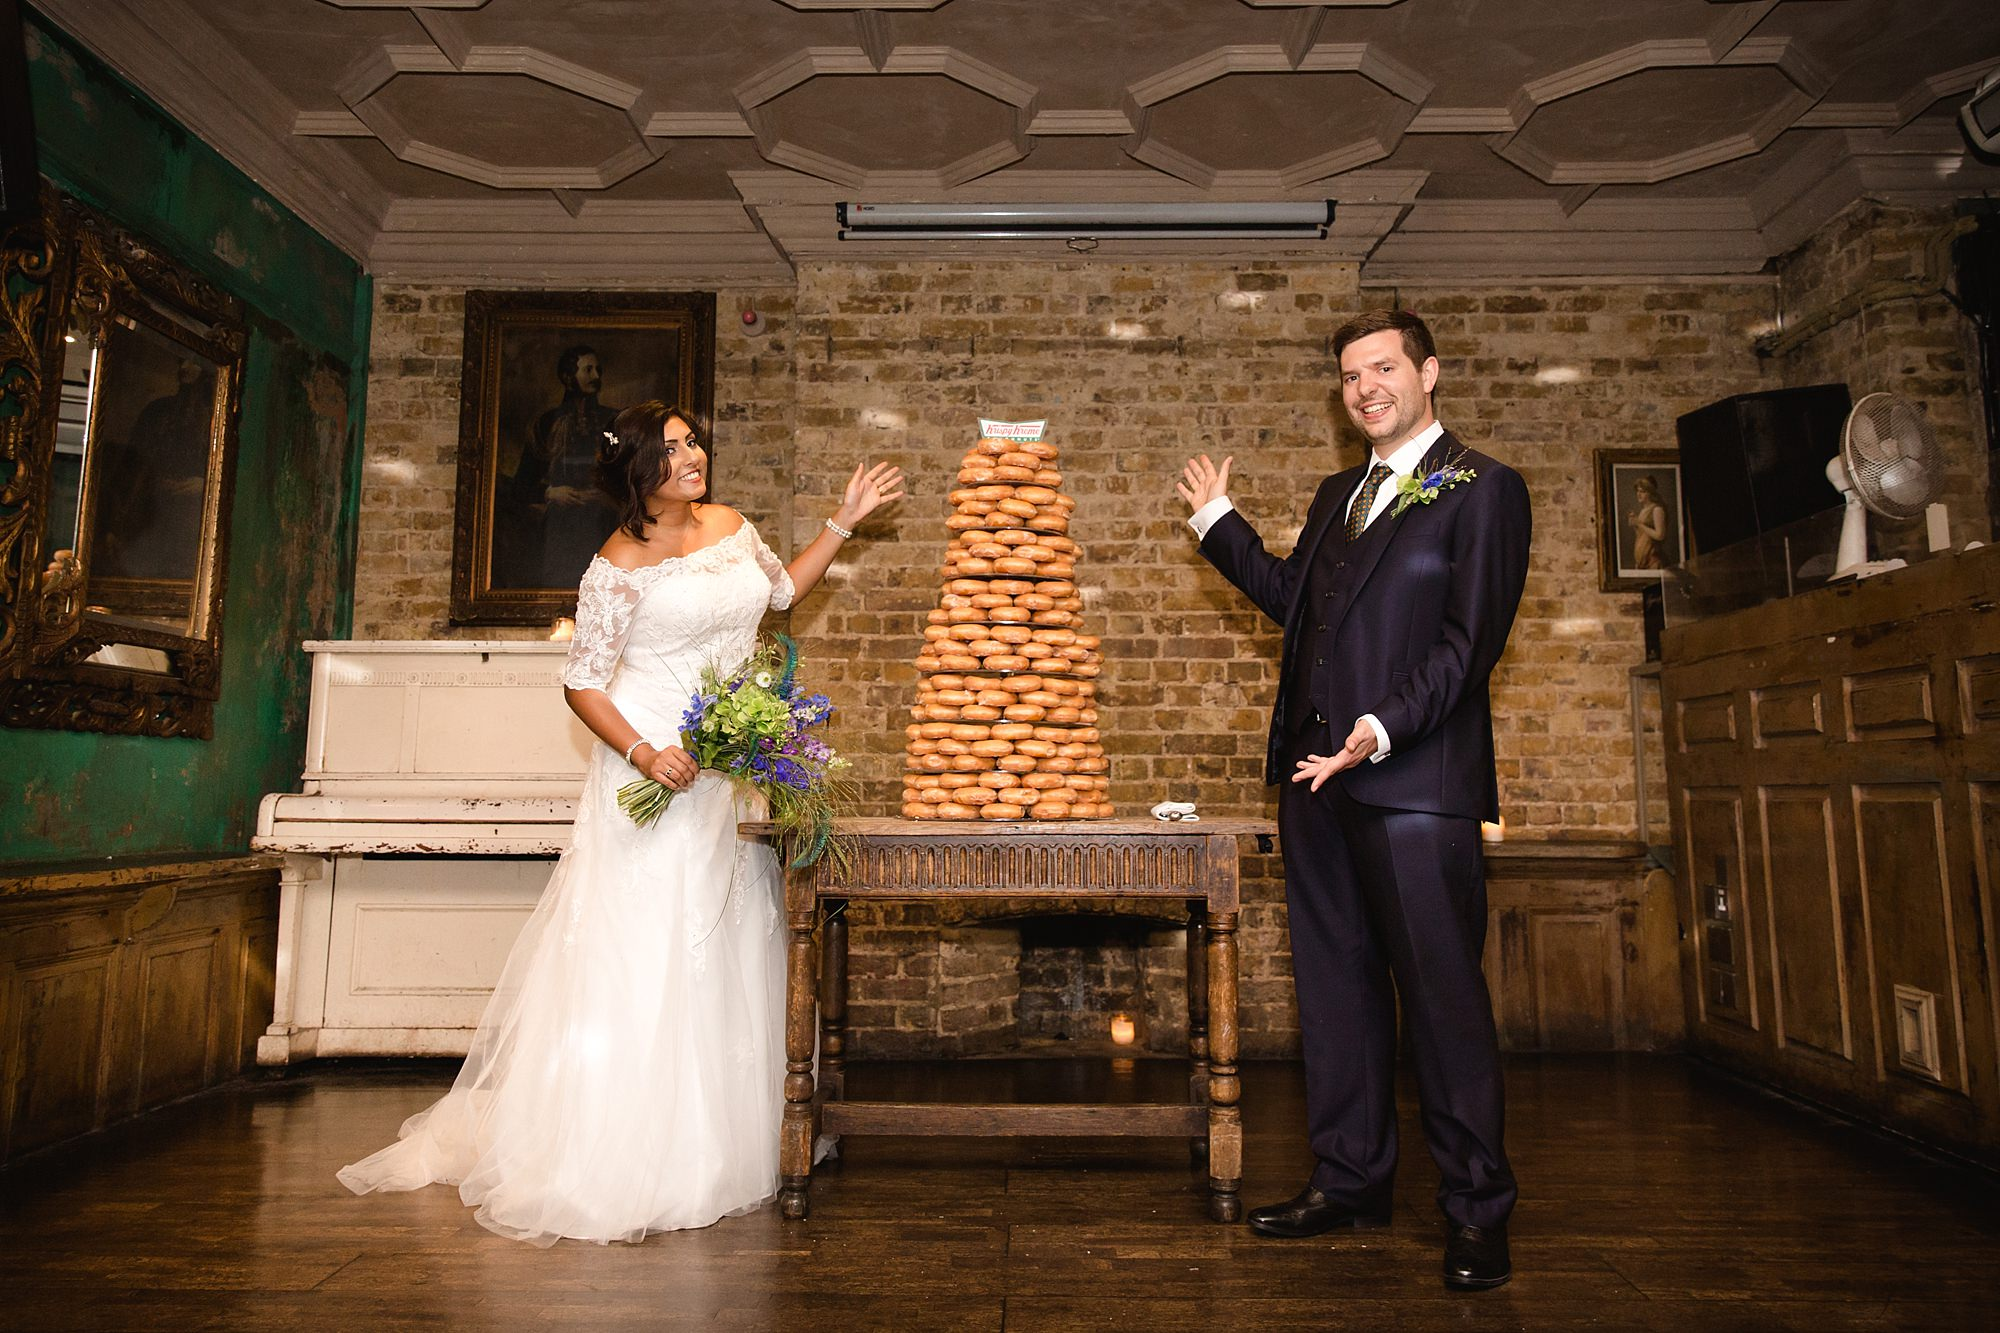 Paradise by way of Kensal Green wedding bride and groom with donut tower